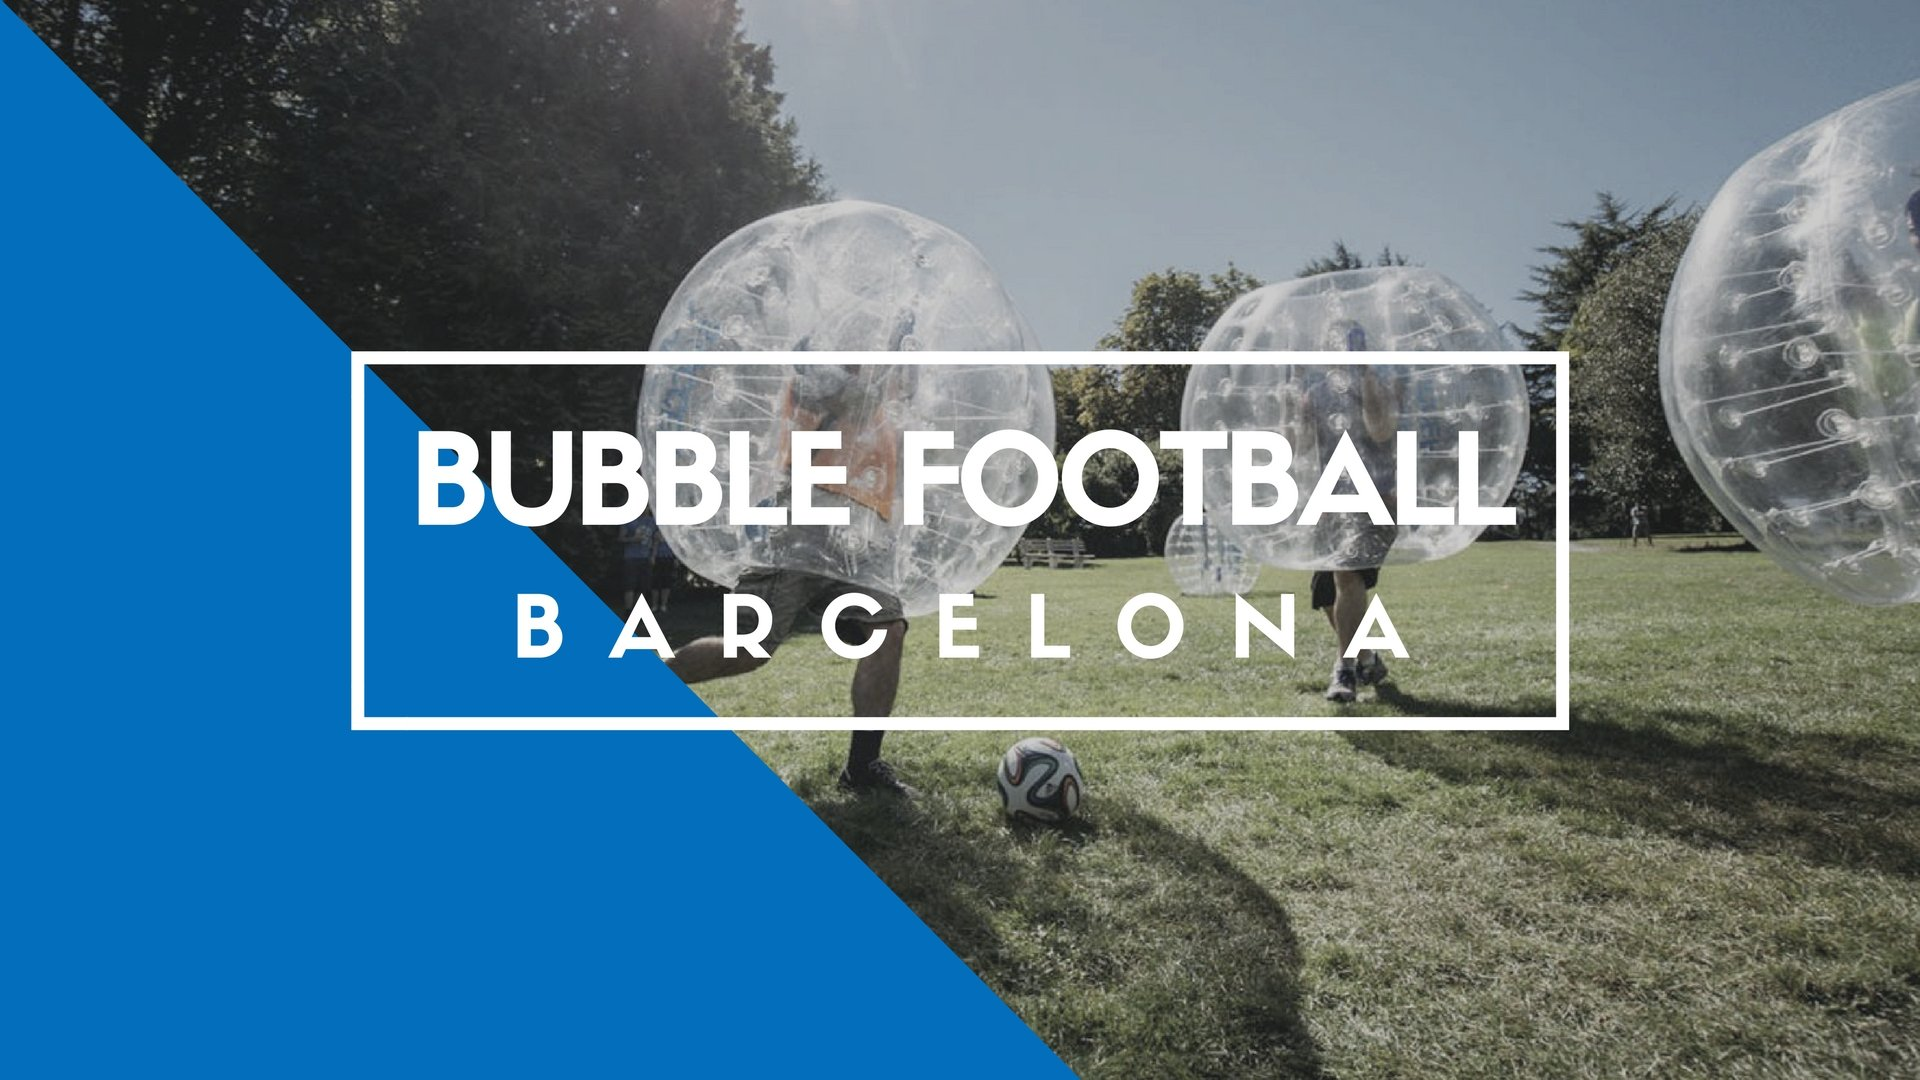 Bubble Football Barcelona